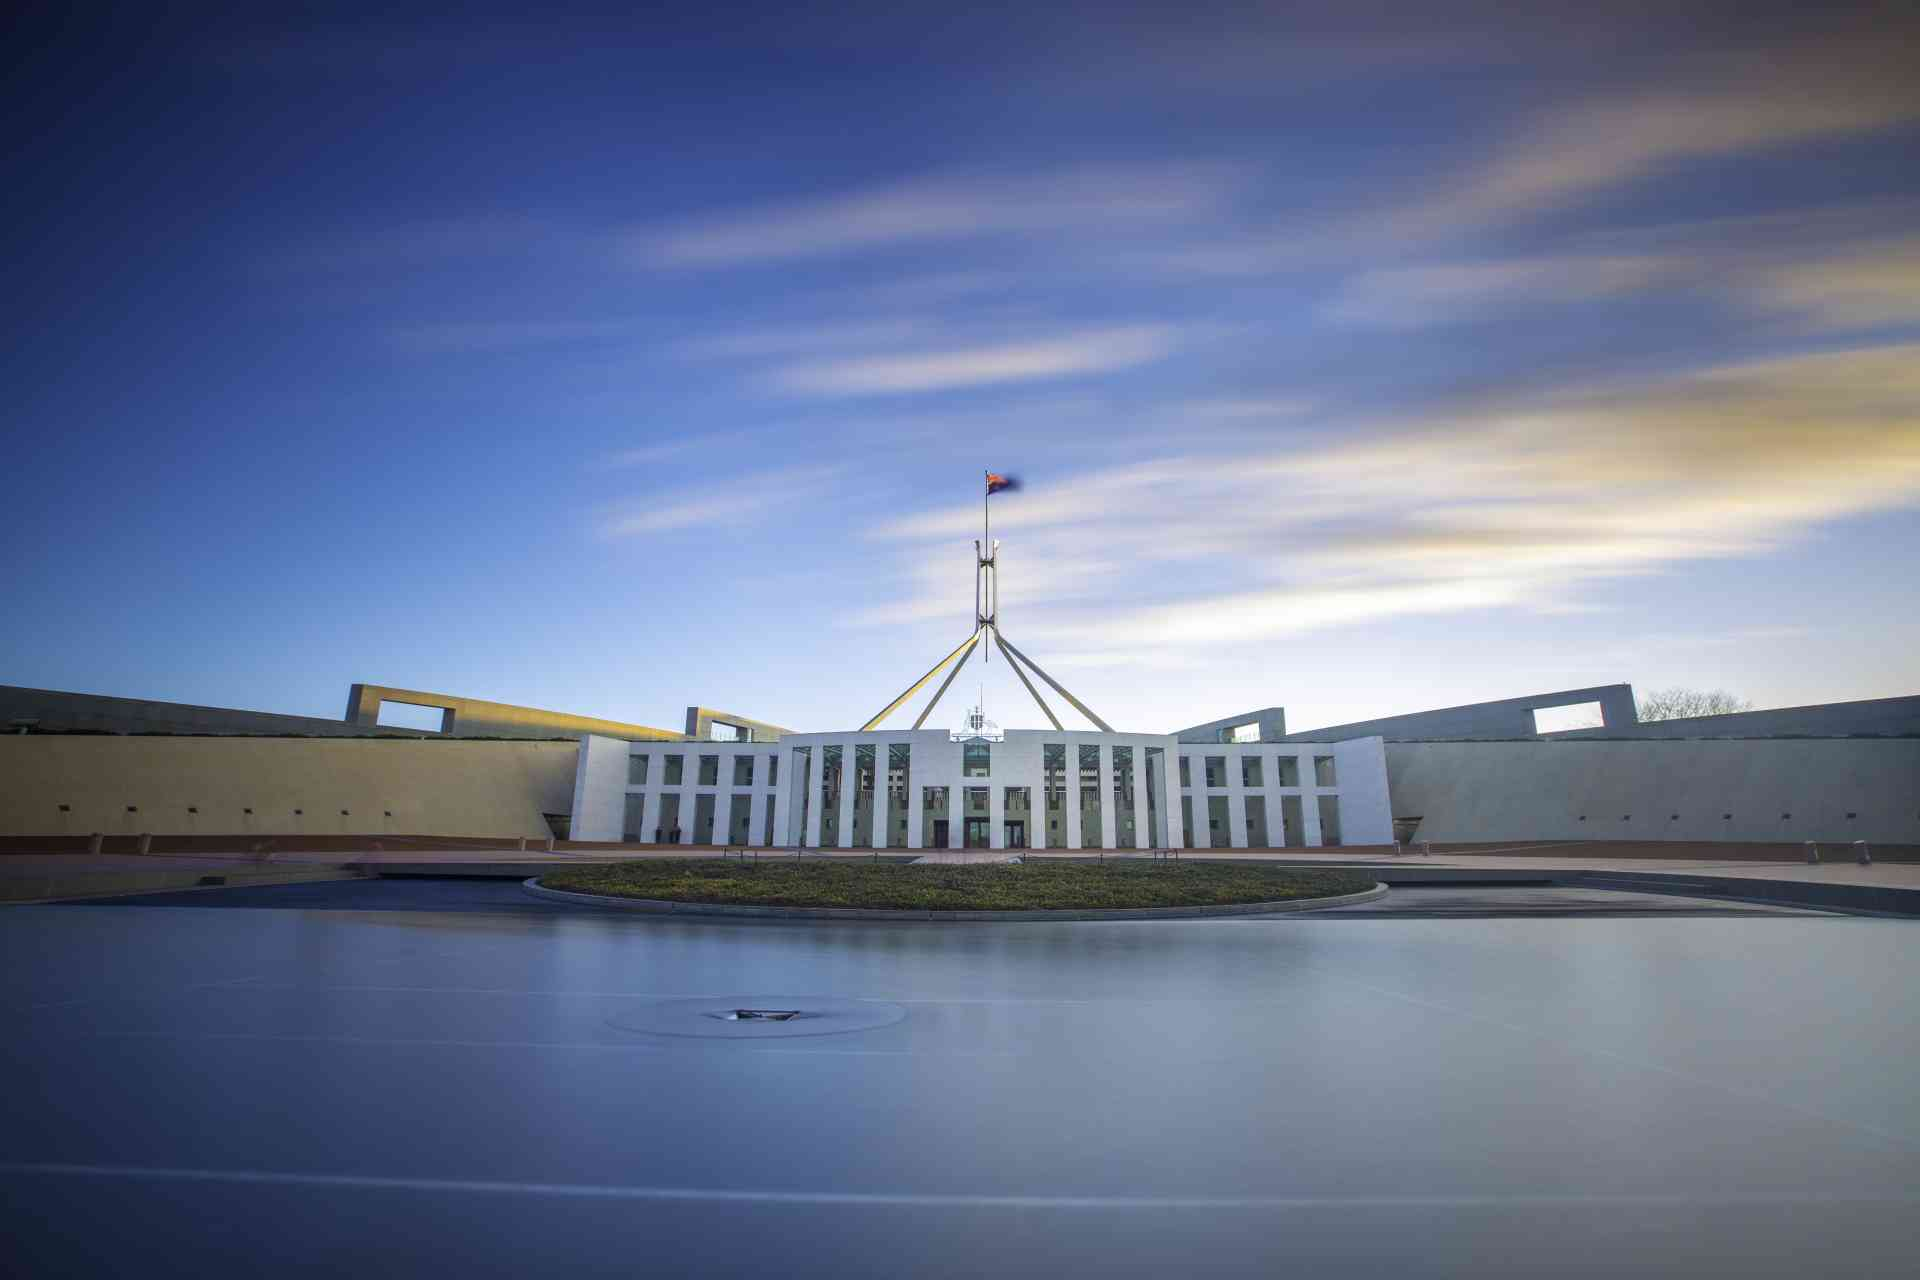 Parliament House, Canberra by VisitCanberra